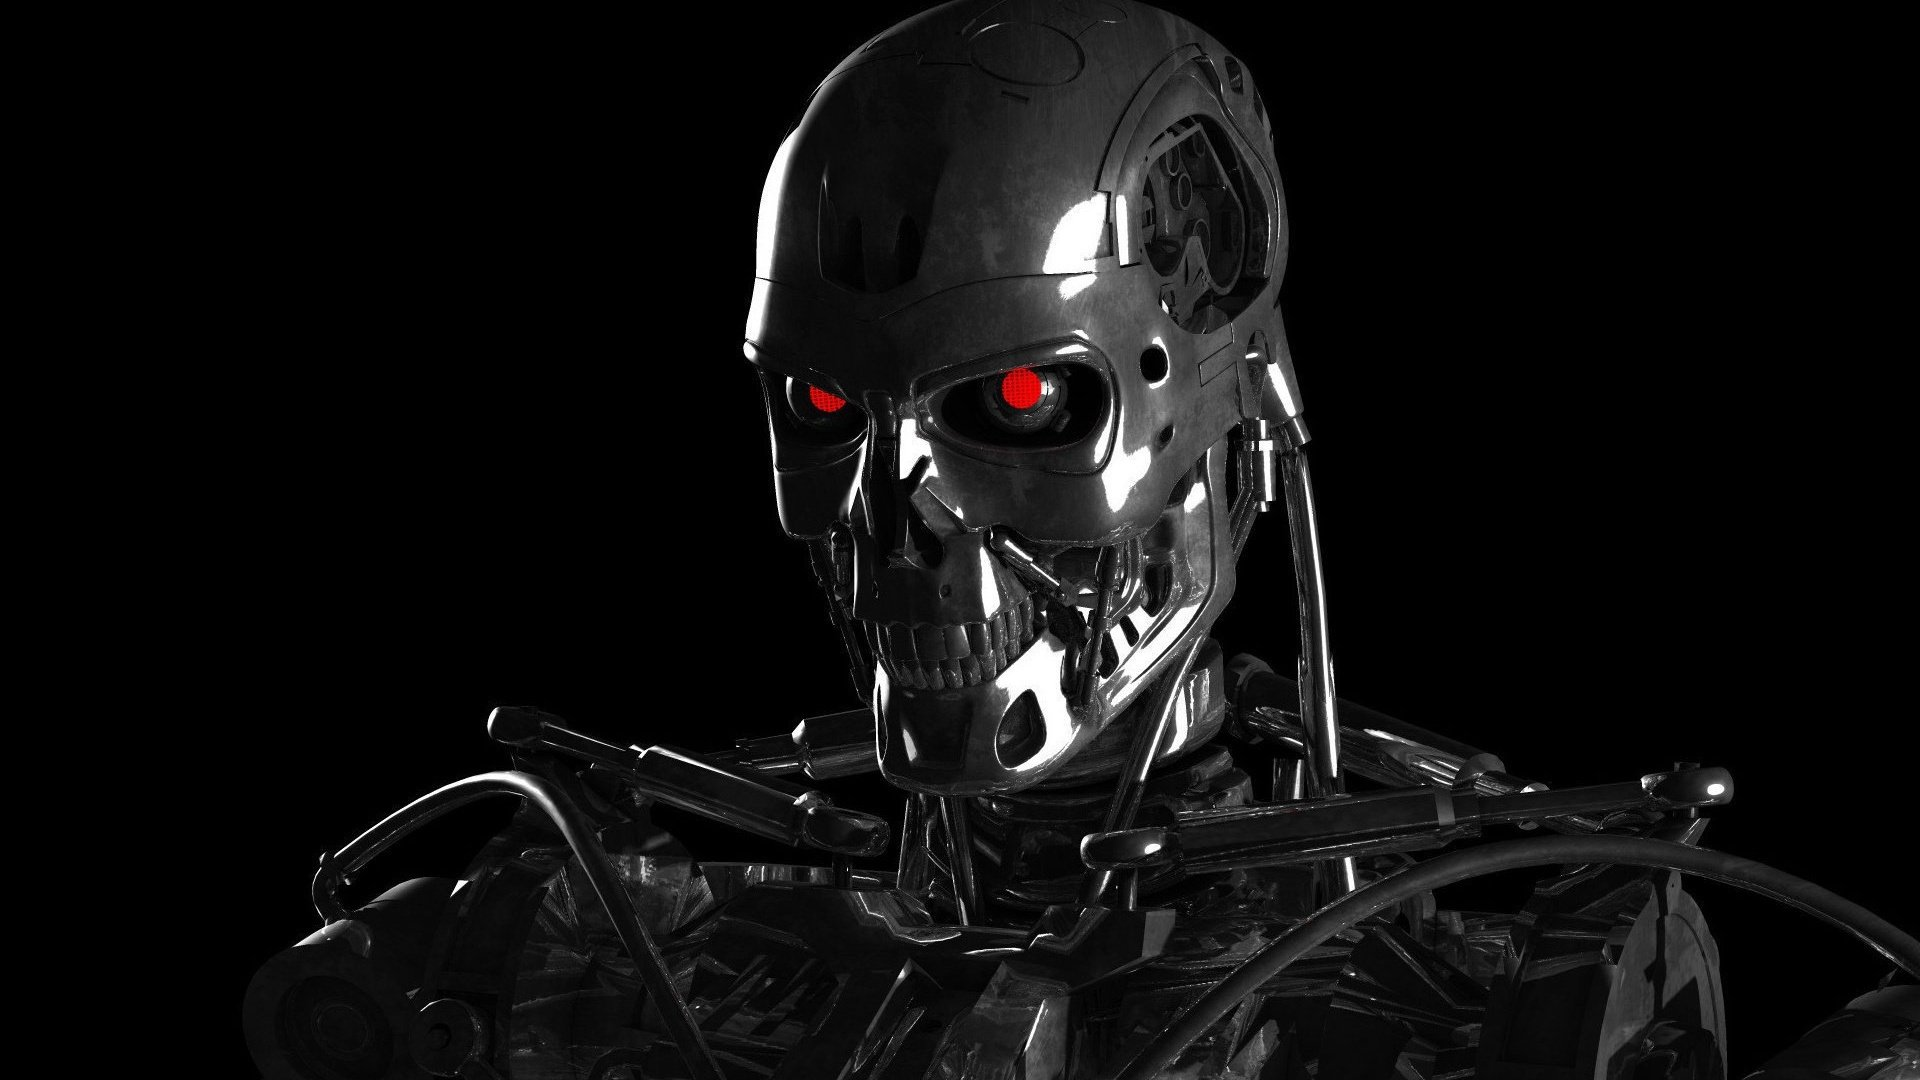 The Terminator Wallpapers, Pictures, Images